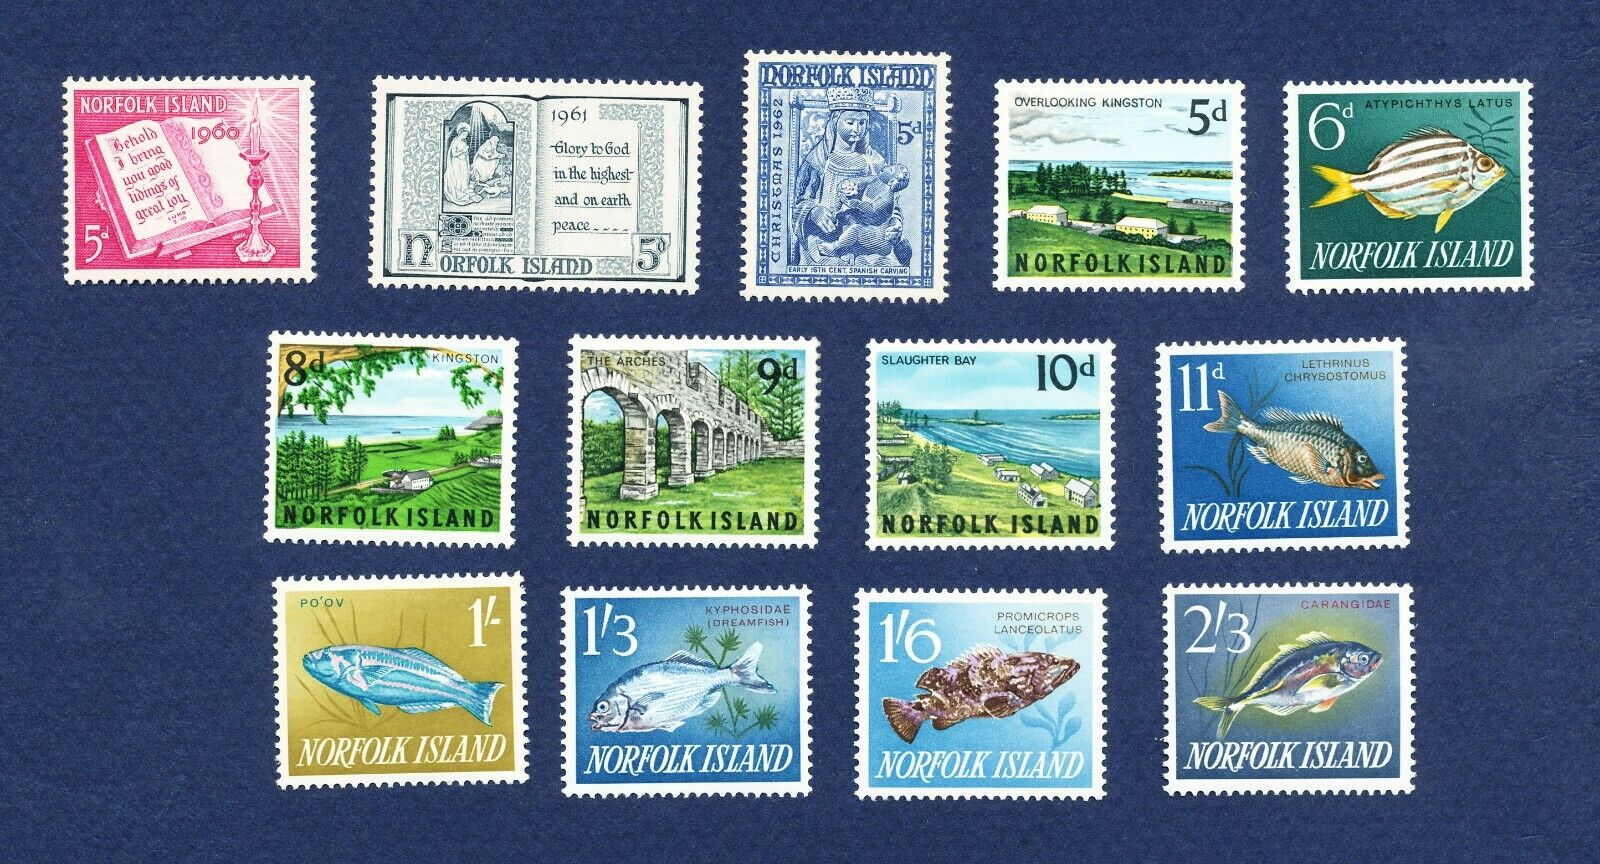 NORFOLK ISLAND - 43-45 49-60 - VF, Most Are MNH Including The High Values  - $9.97